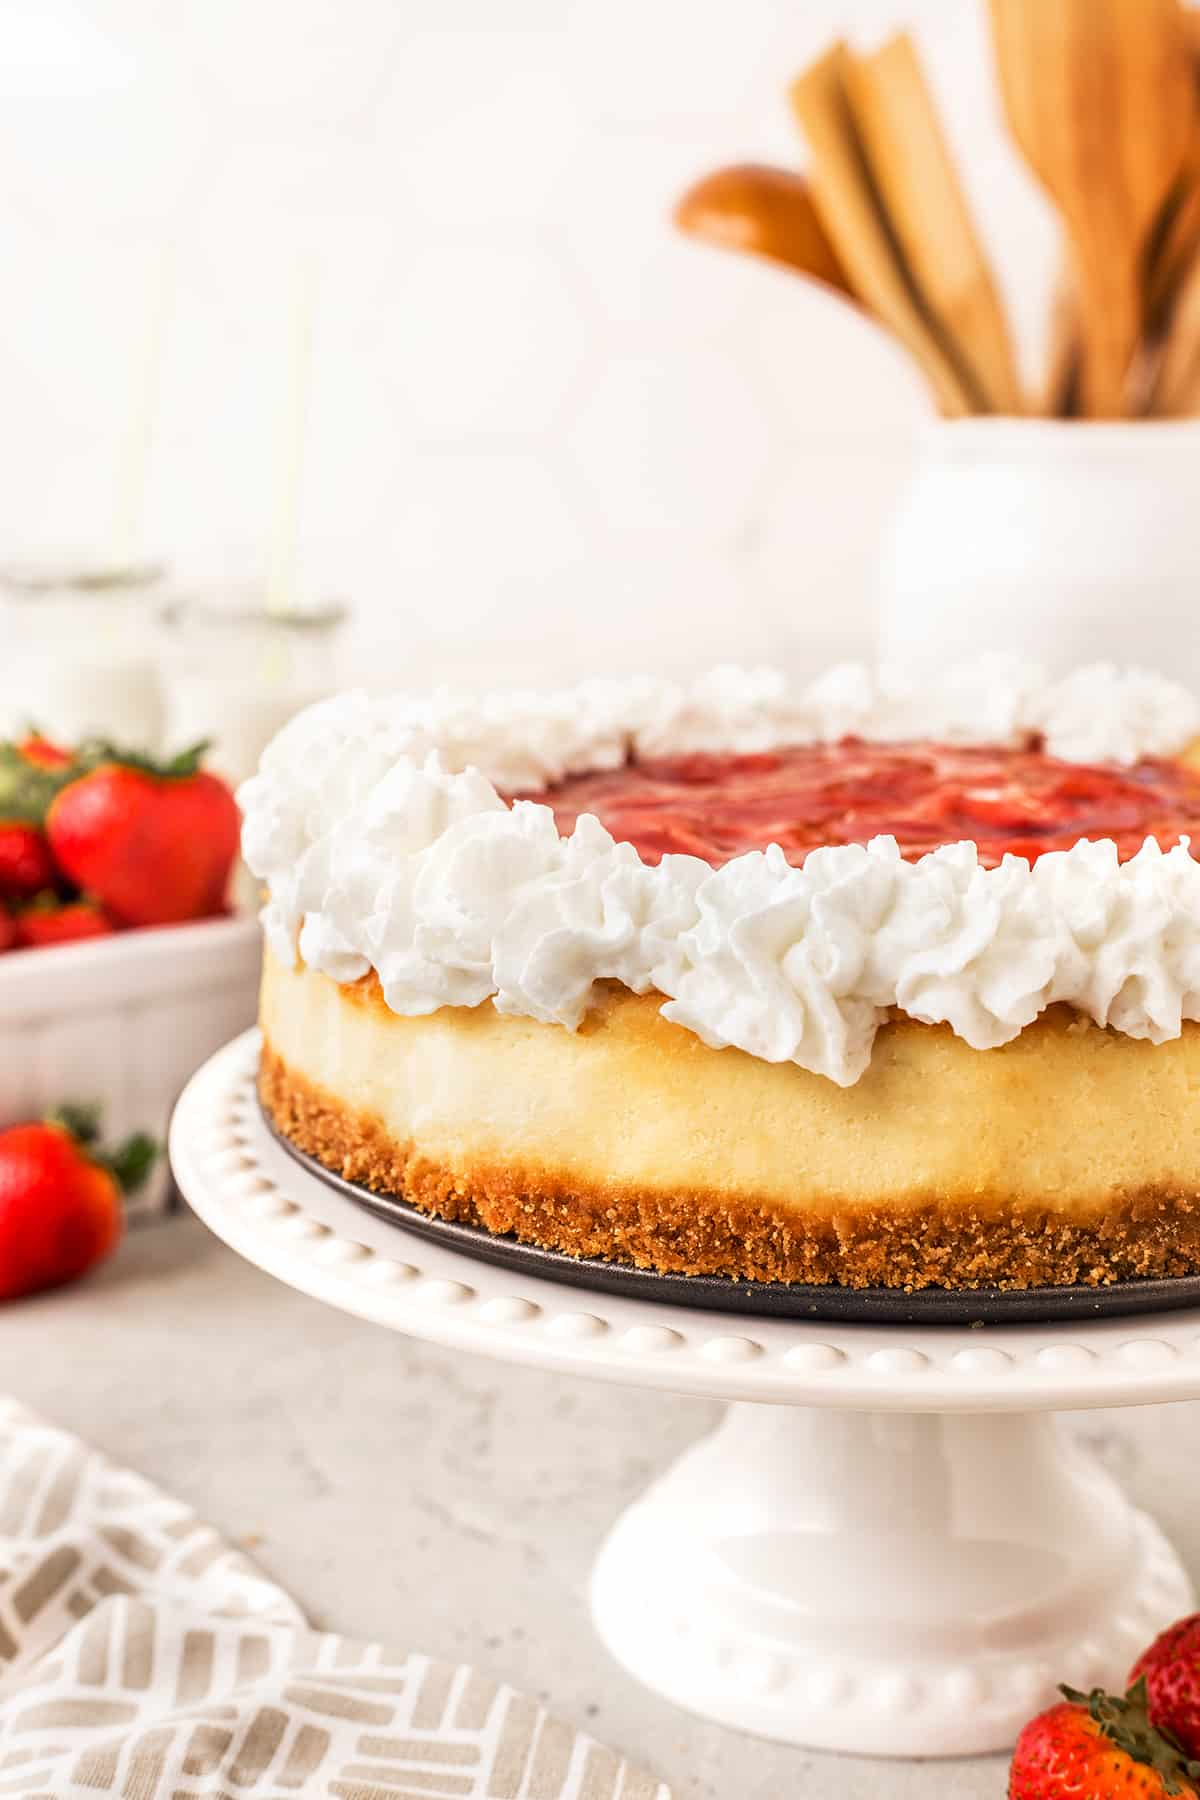 Finished Light and Airy Strawberry Cheesecake on a cake stand